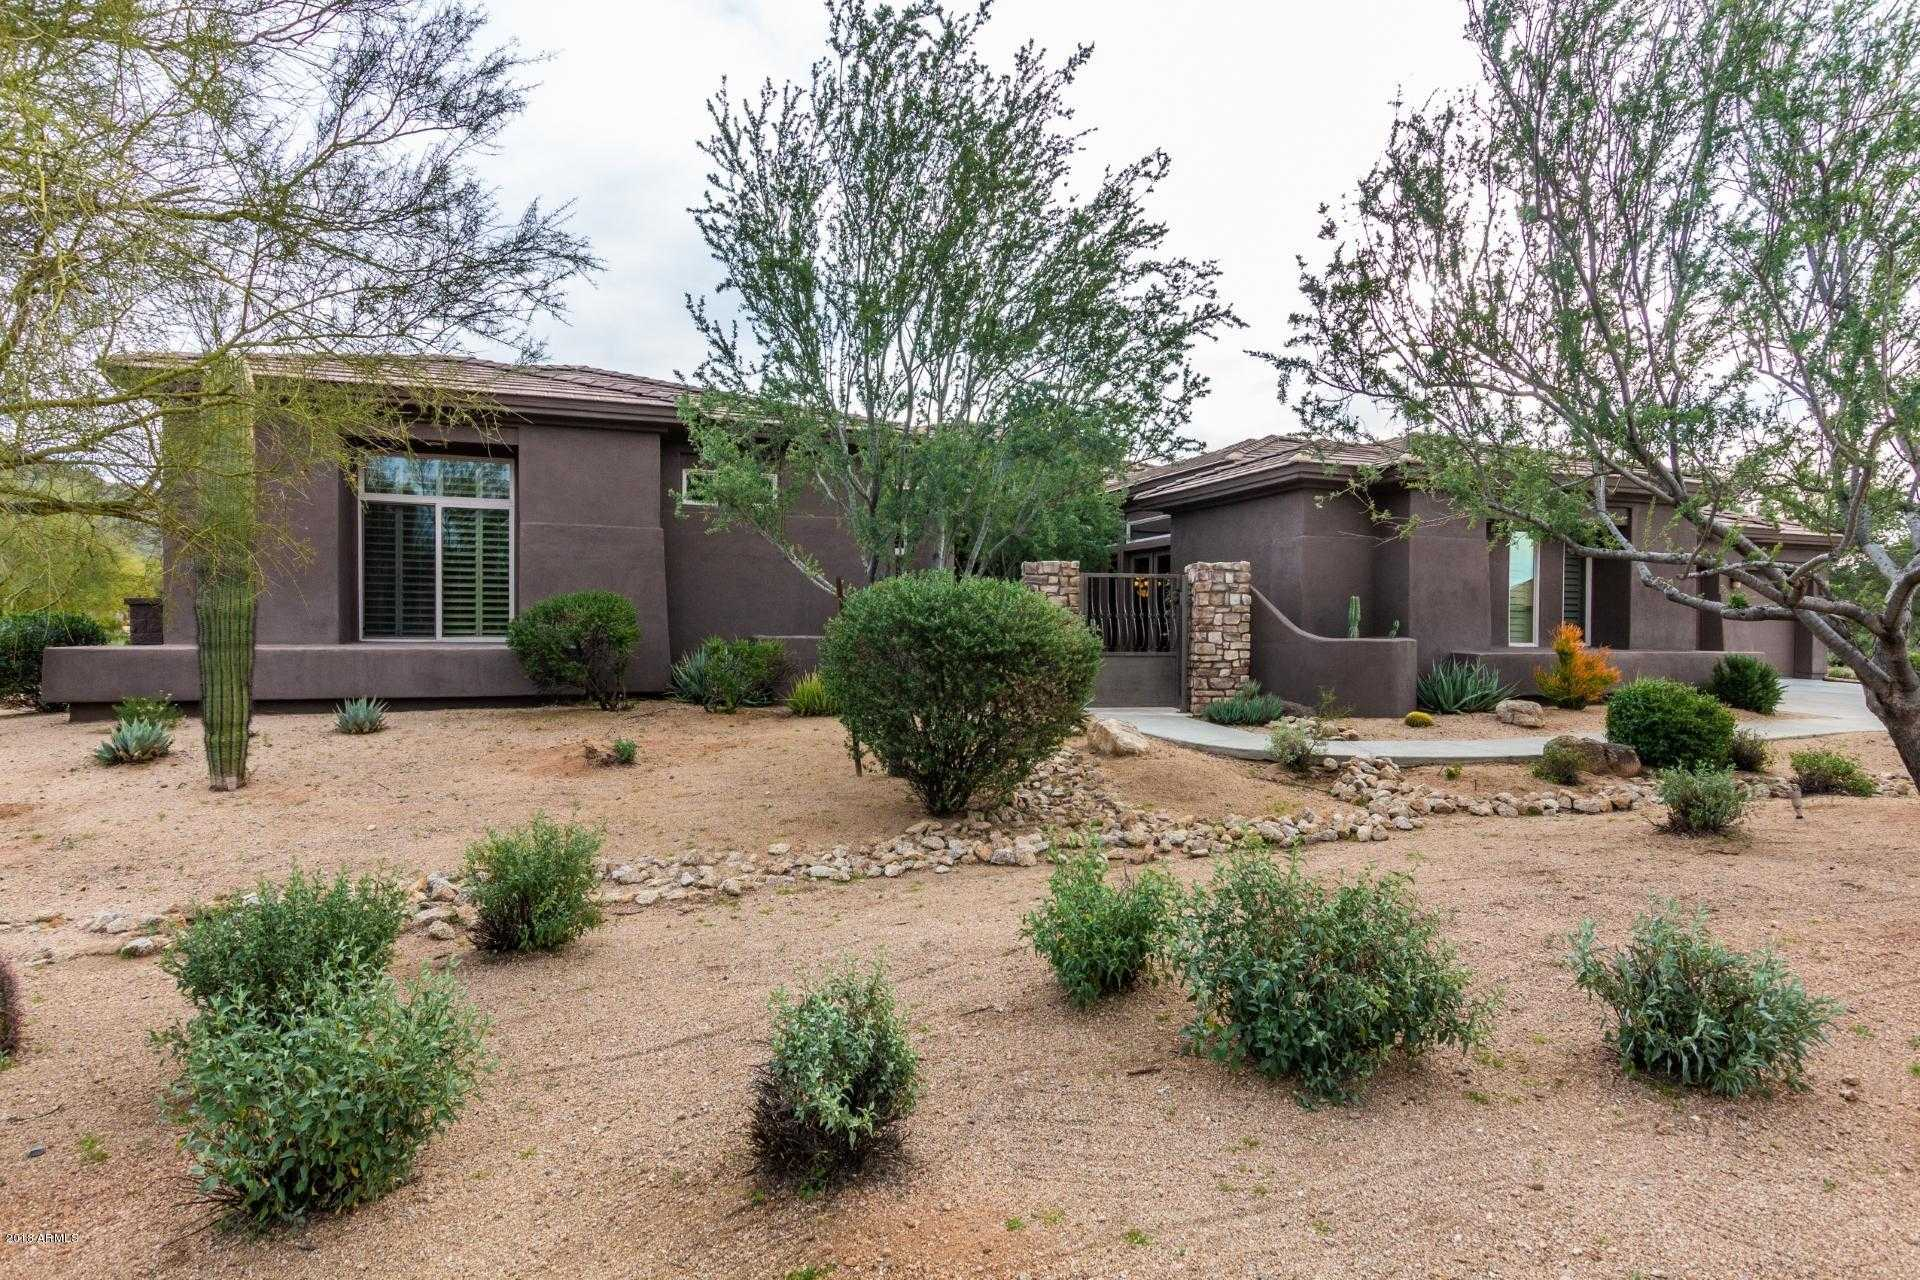 $5,000 - 5Br/5Ba - Home for Sale in Carefree Ironwood Estates, Carefree